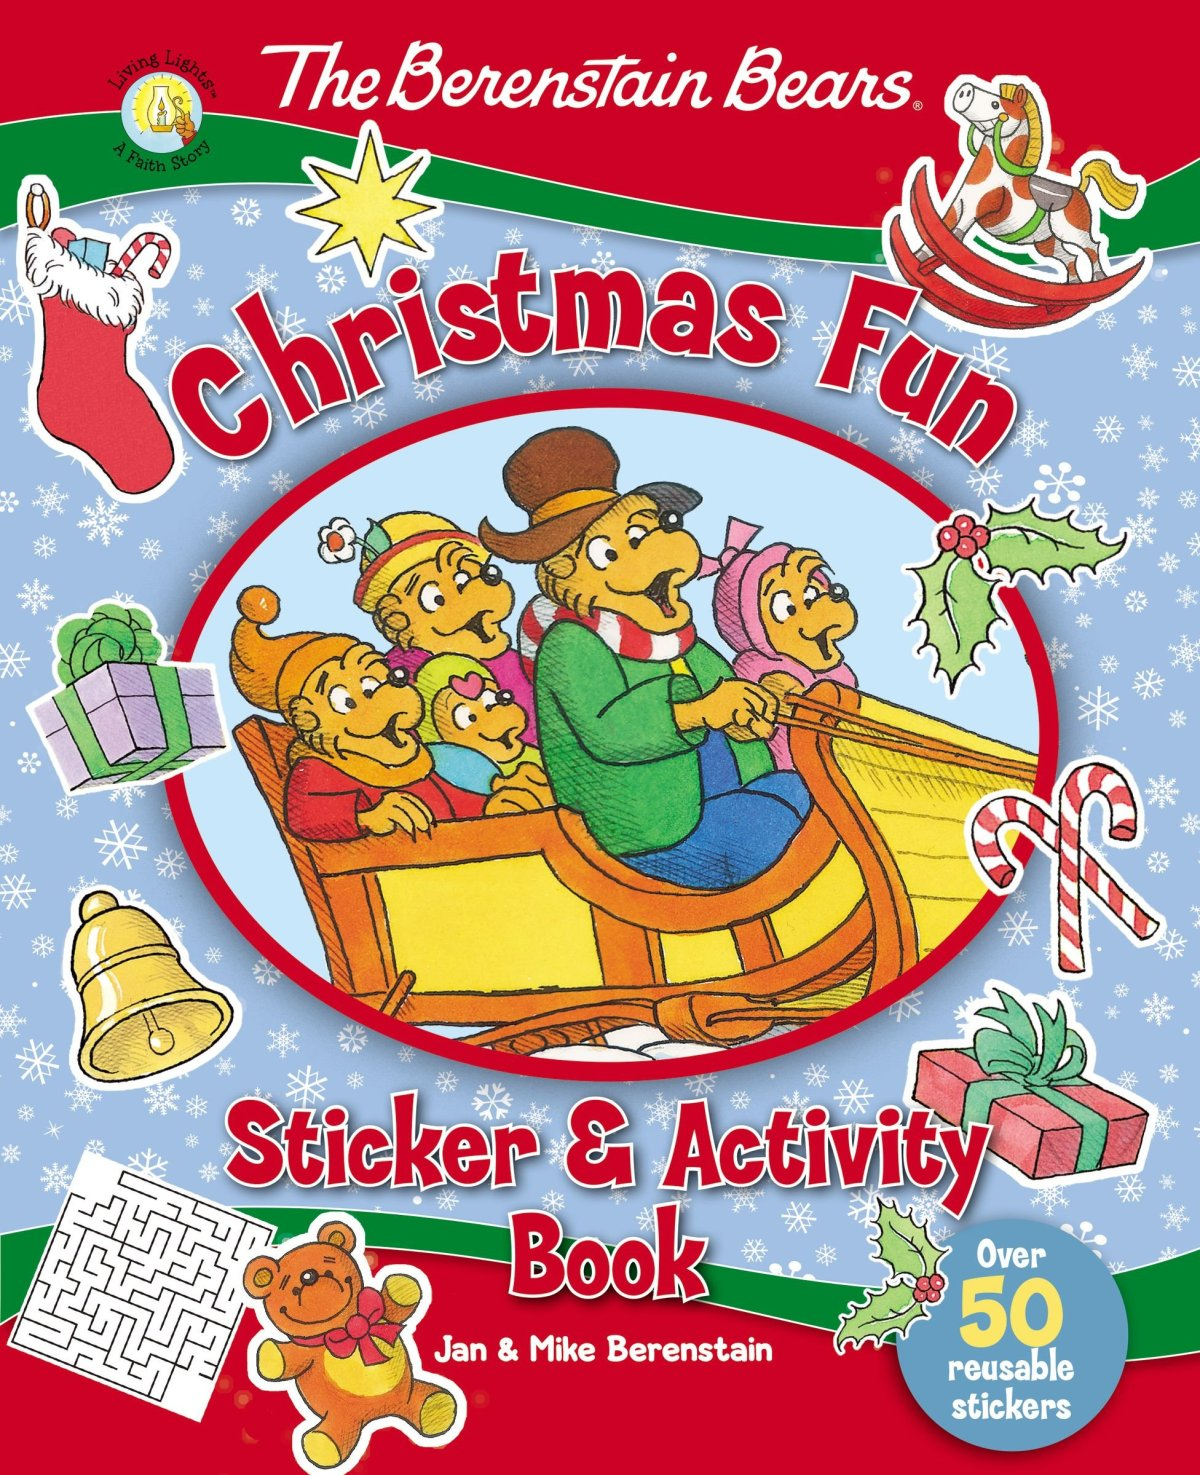 The Berenstain Bears Christmas Activity Book